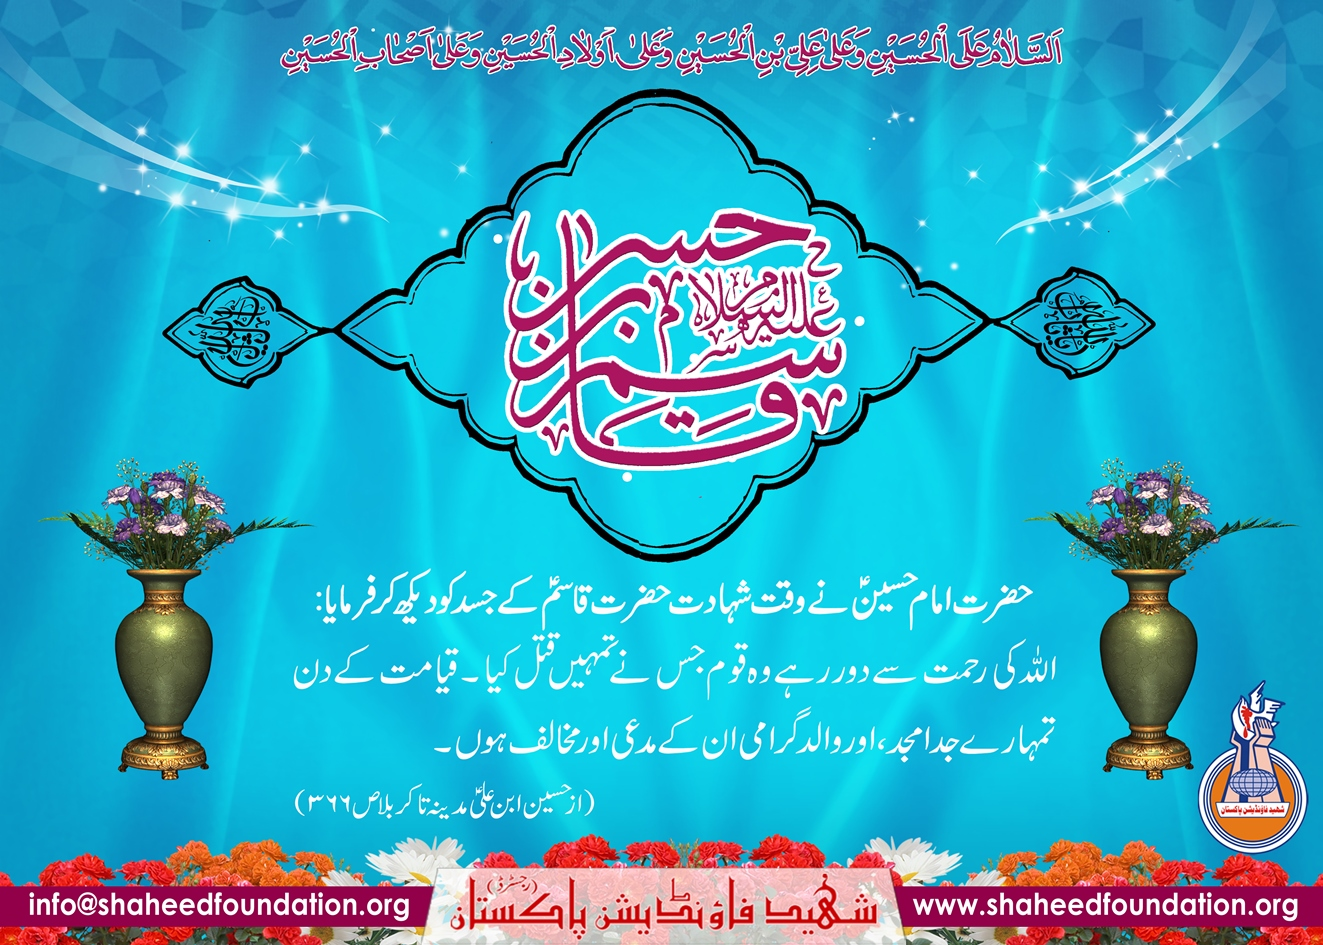 7th Shaaban: Birth Anniversary Hazrat Qasim Son of Iman Hasan a.s.